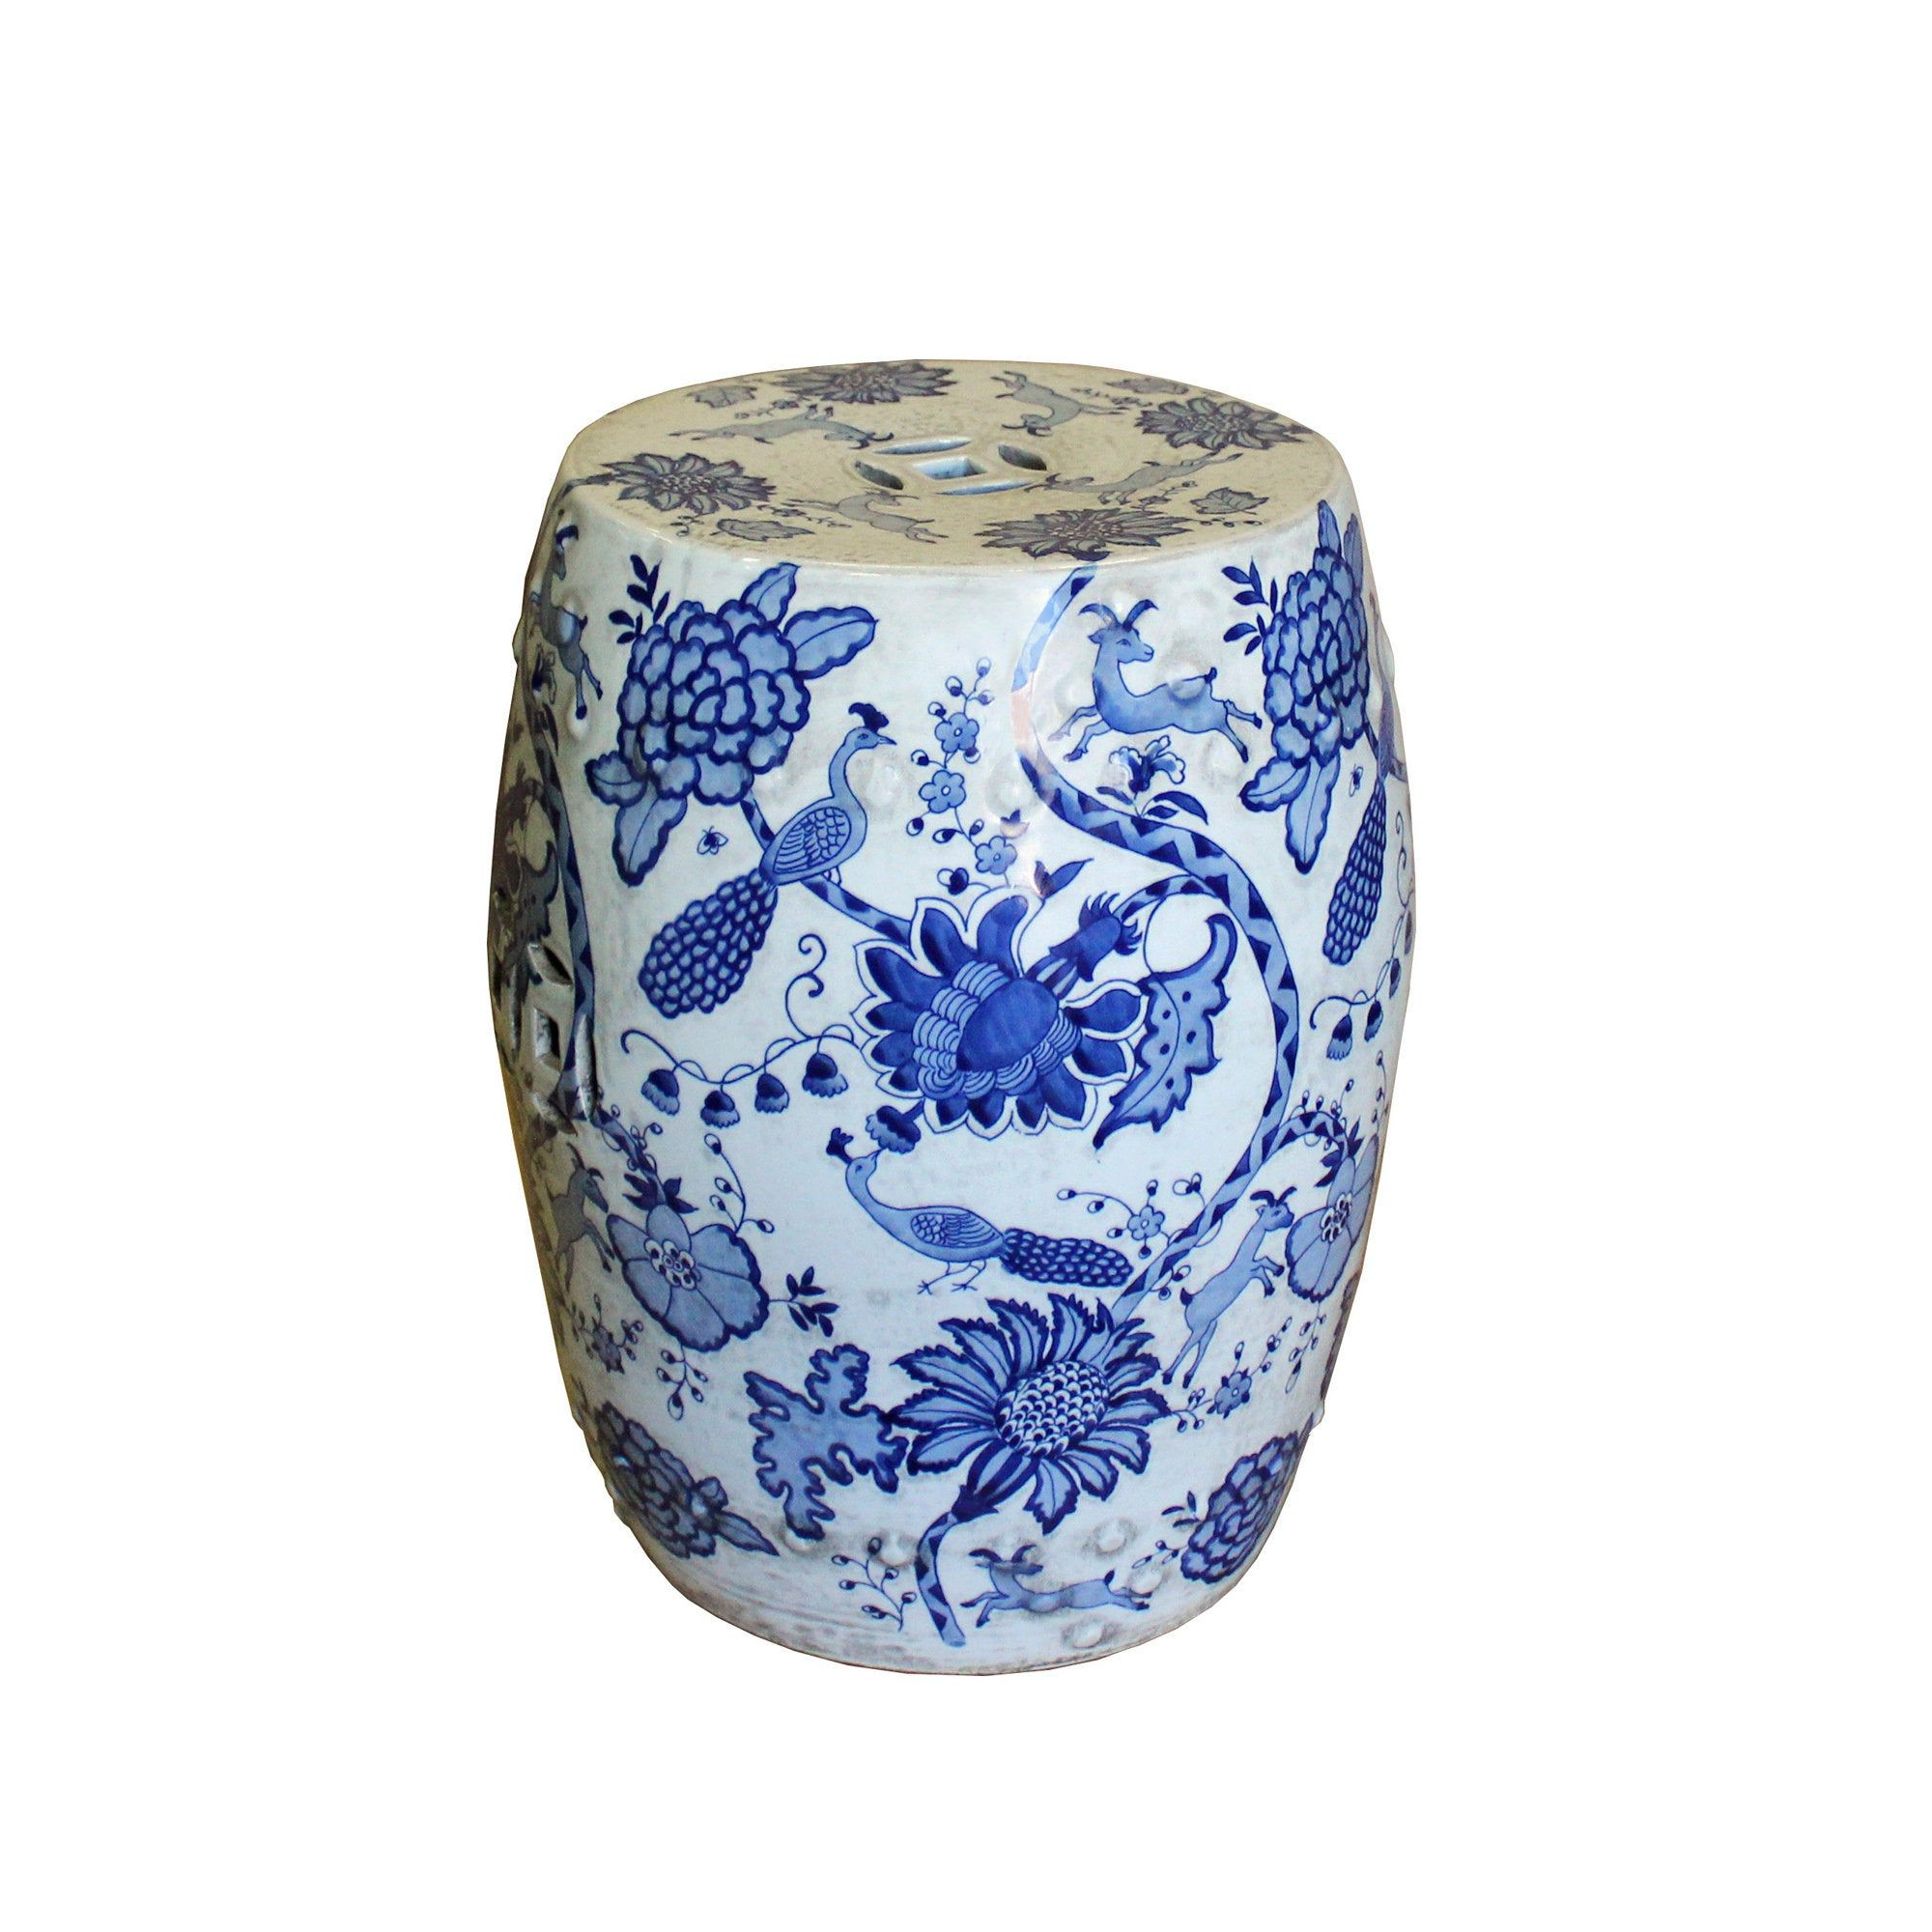 Chinese Blue & White Porcelain Round Flower Bird Stool Throughout Maci Tropical Birds Garden Stools (View 3 of 25)